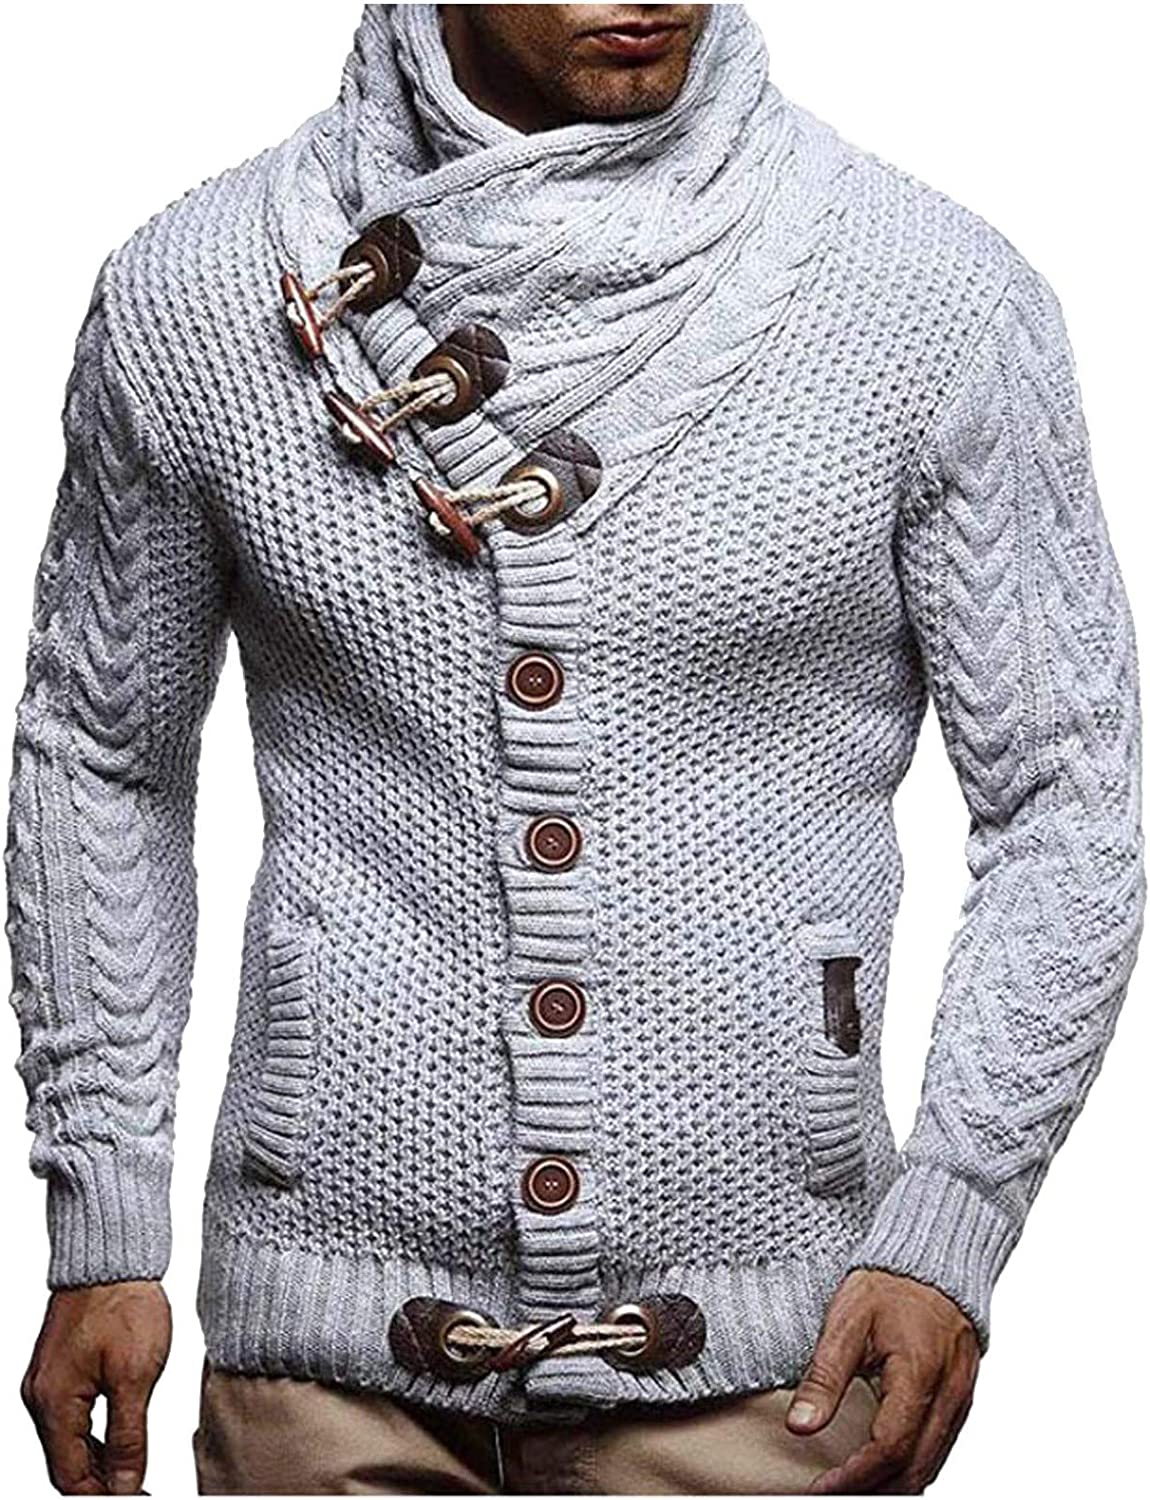 Maryia Men's Winter Turtleneck Long Sleeve Pullover Cardigan Sweaters Turtleneck Knitted Jumper Tops Blouse Gray